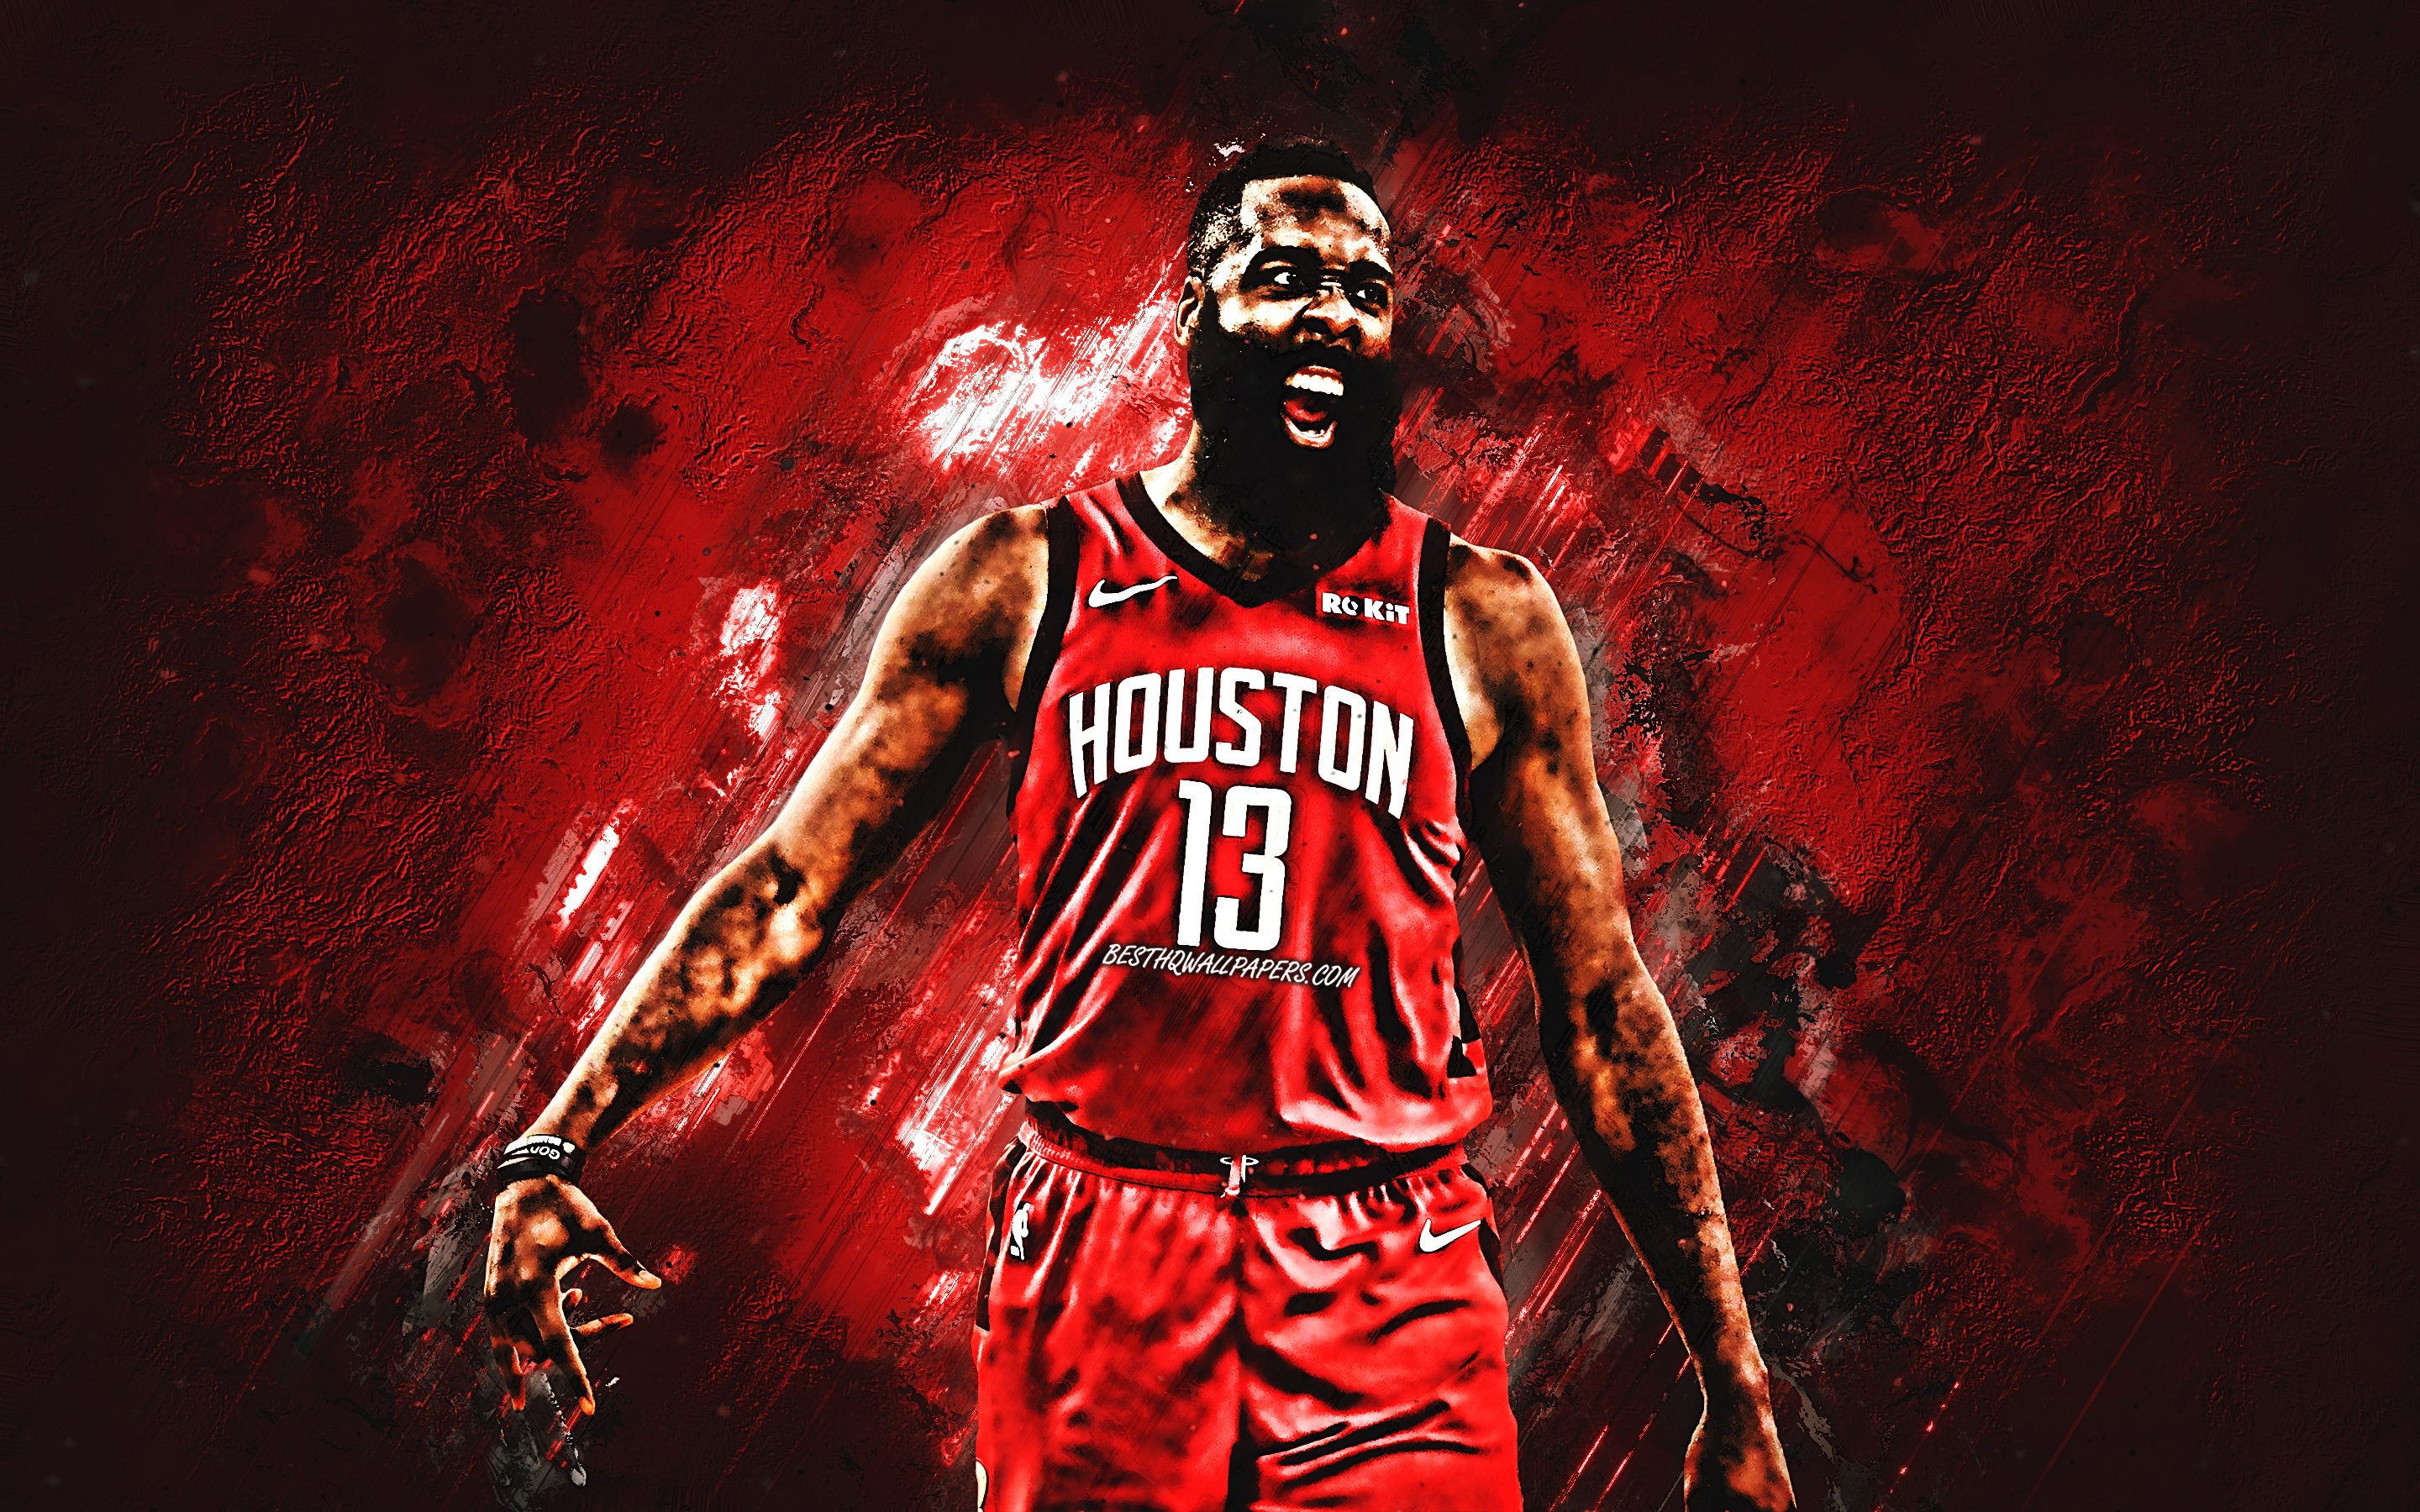 James Harden, Houston Rockets, Portrait, American Basketball - James Harden Fondo De Pantalla , HD Wallpaper & Backgrounds